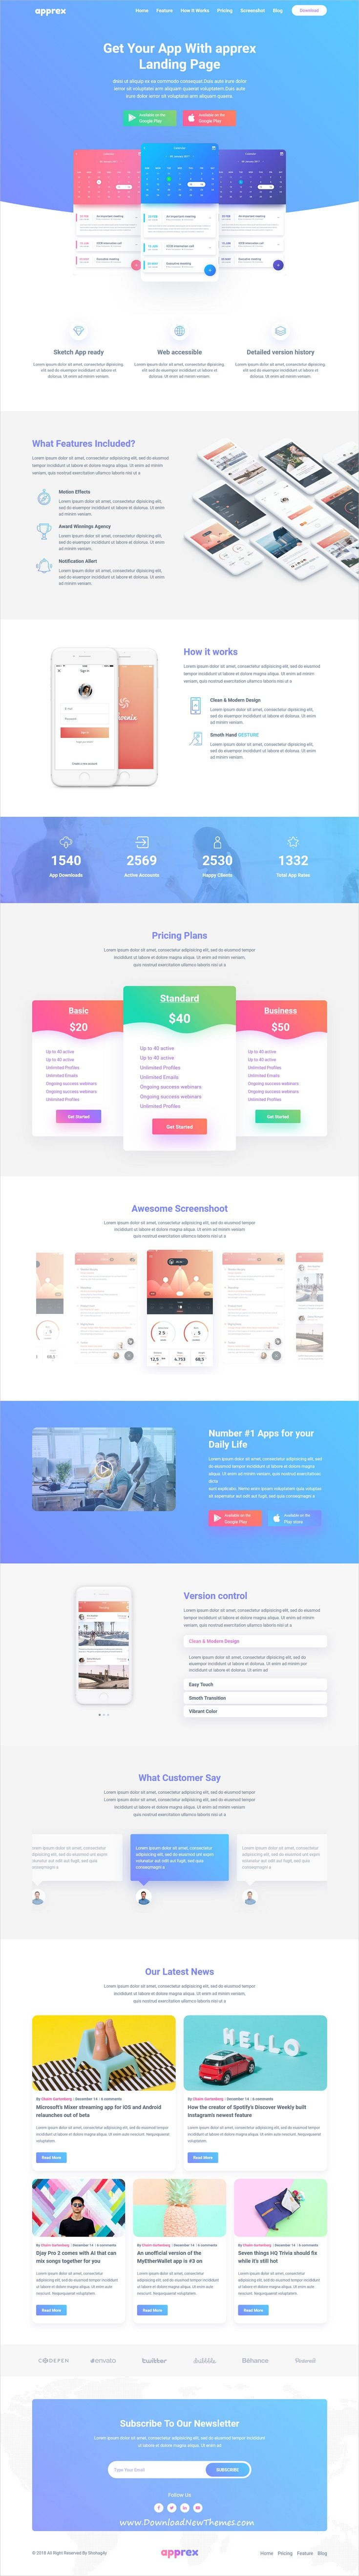 Apprex is clean and modern design 6in1 responsive #bootstrap HTML #template for creative #app, SaaS and software #landingpage website to live preview & download click on image or Visit